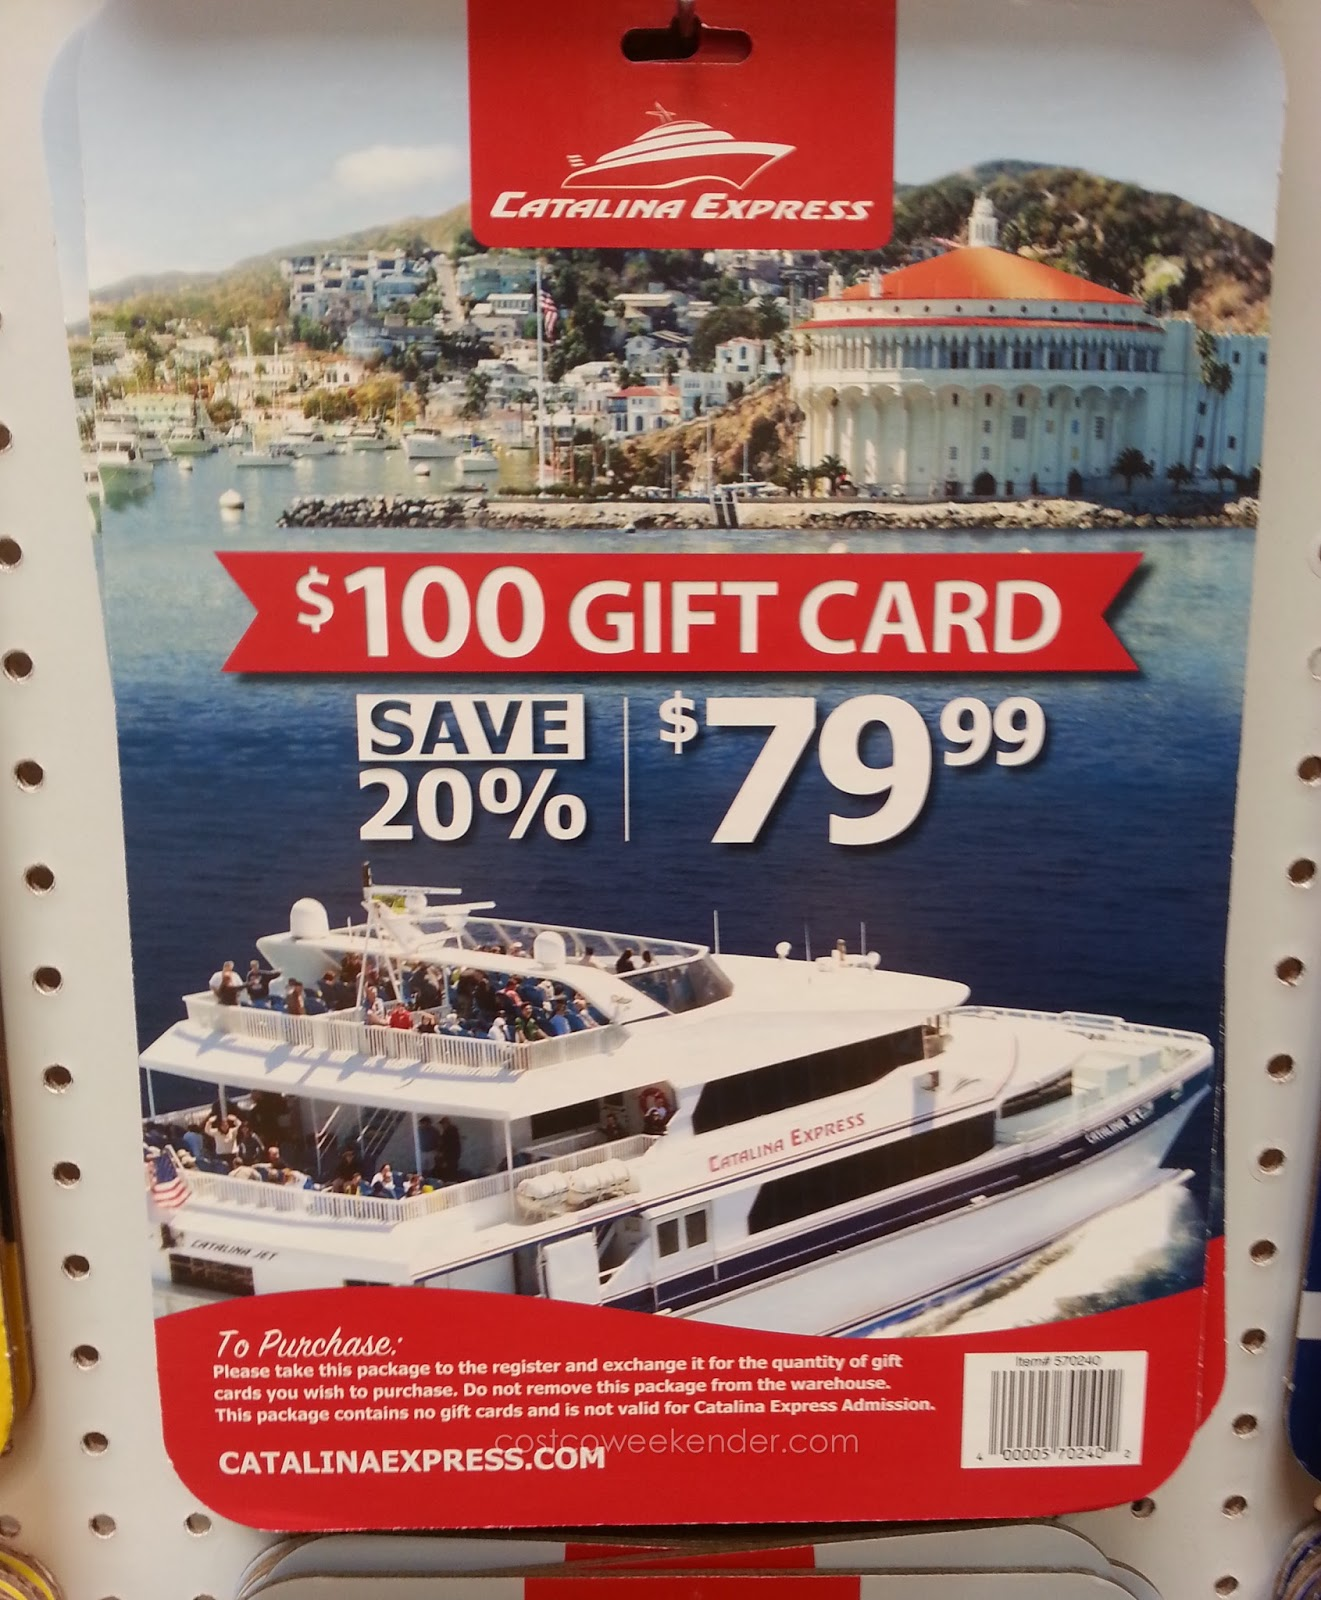 Enjoy a nice day trip on Catalina Island with Catalina Express